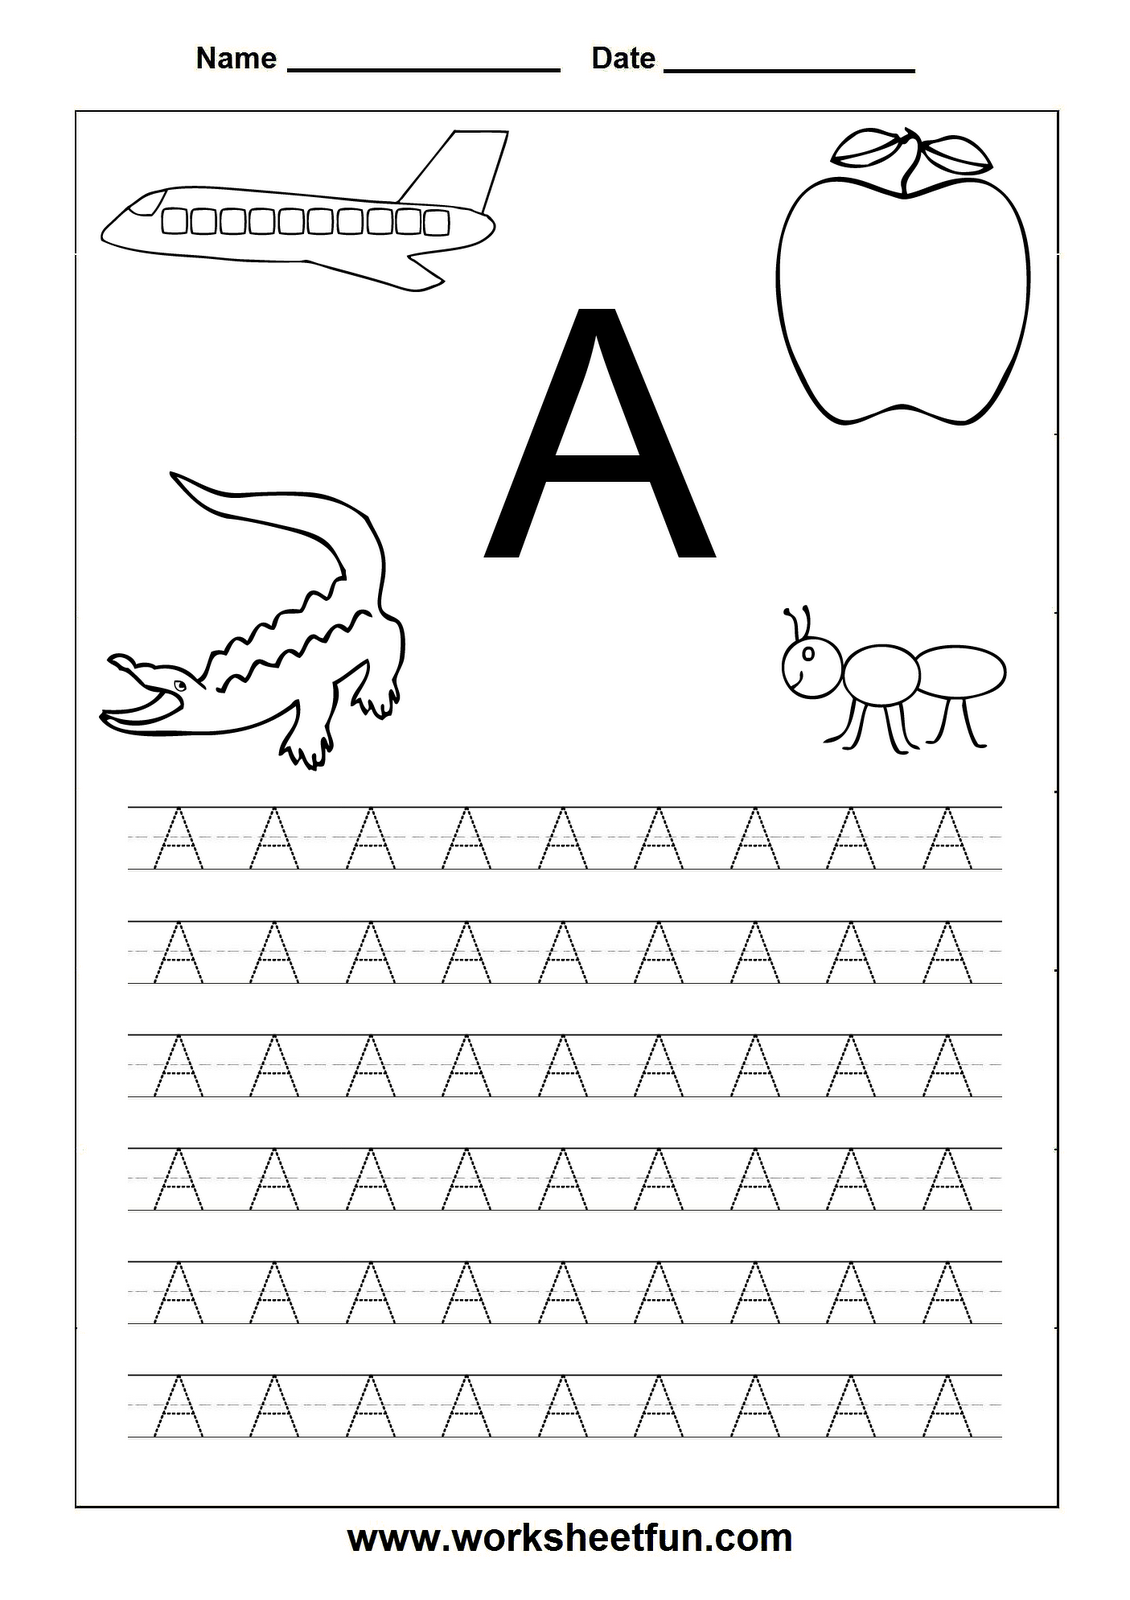 Worksheets Printable Letter A Worksheets a z capital letter tracing worksheets there are plenty more on various subjects on